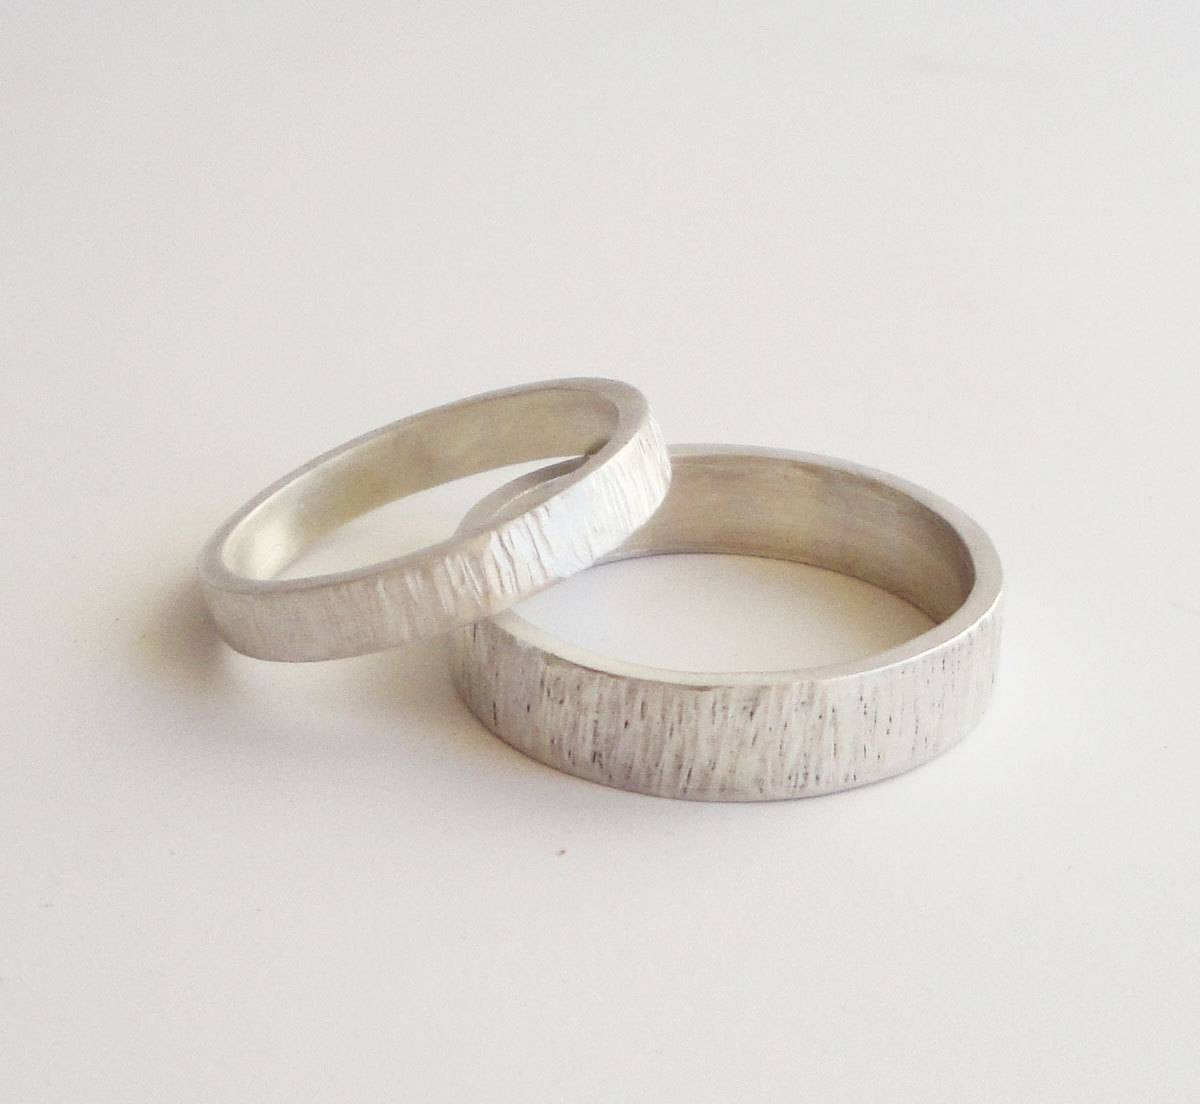 Silver Wedding Rings Set Handmade Silver Wedding Band Set Intended For Recent Womens Plain Wedding Bands (View 8 of 15)